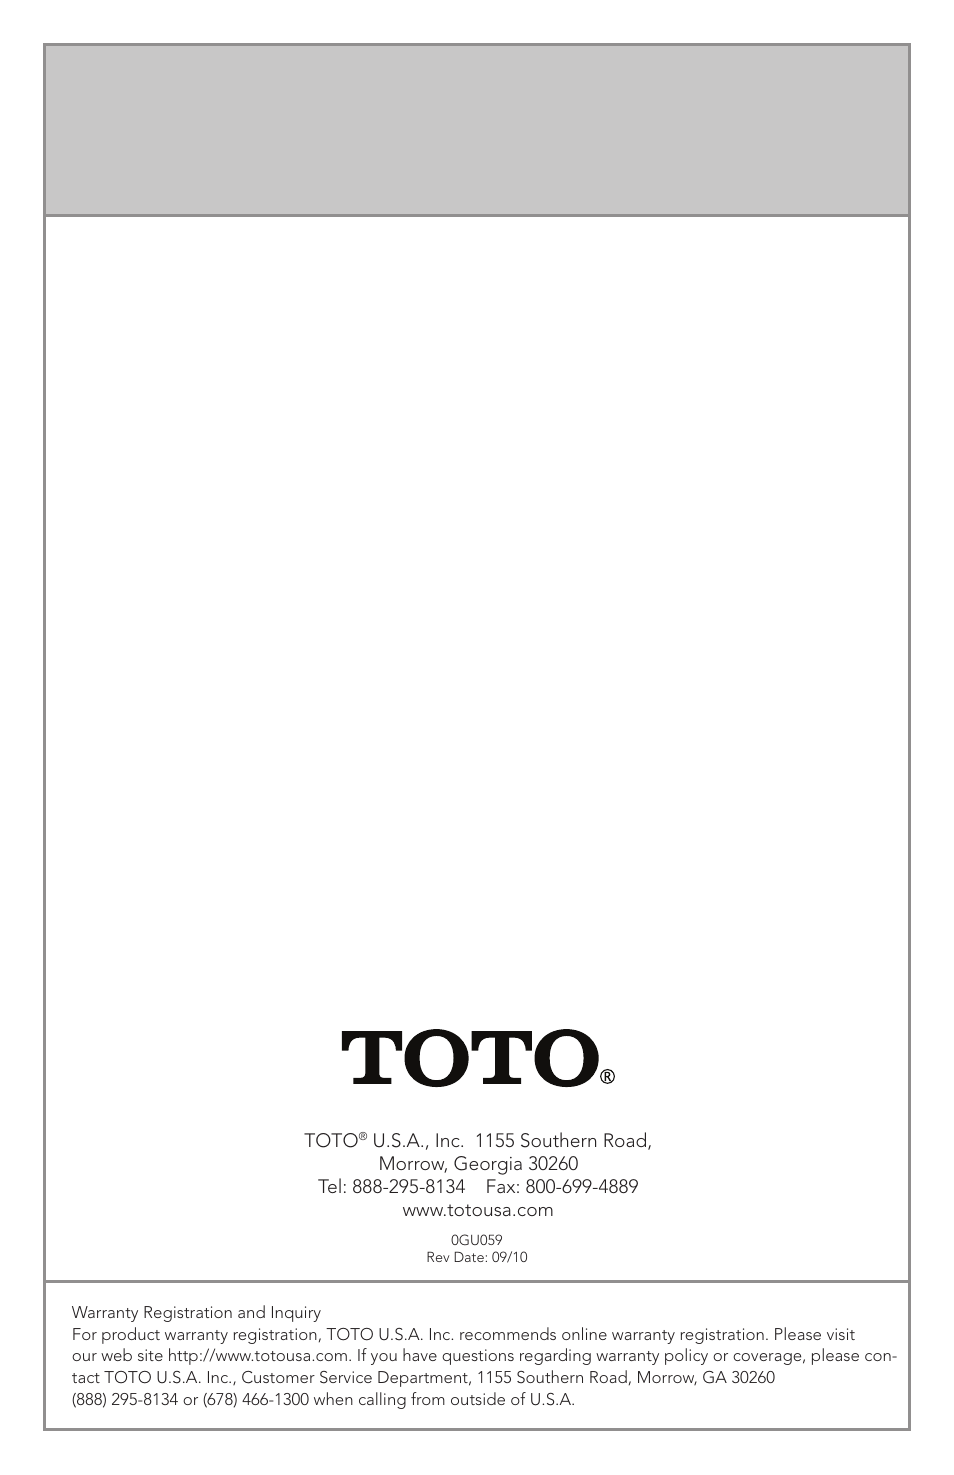 Factory Direct Hardware Toto WT152M#01 In-Wall User Manual | Page 24 ...